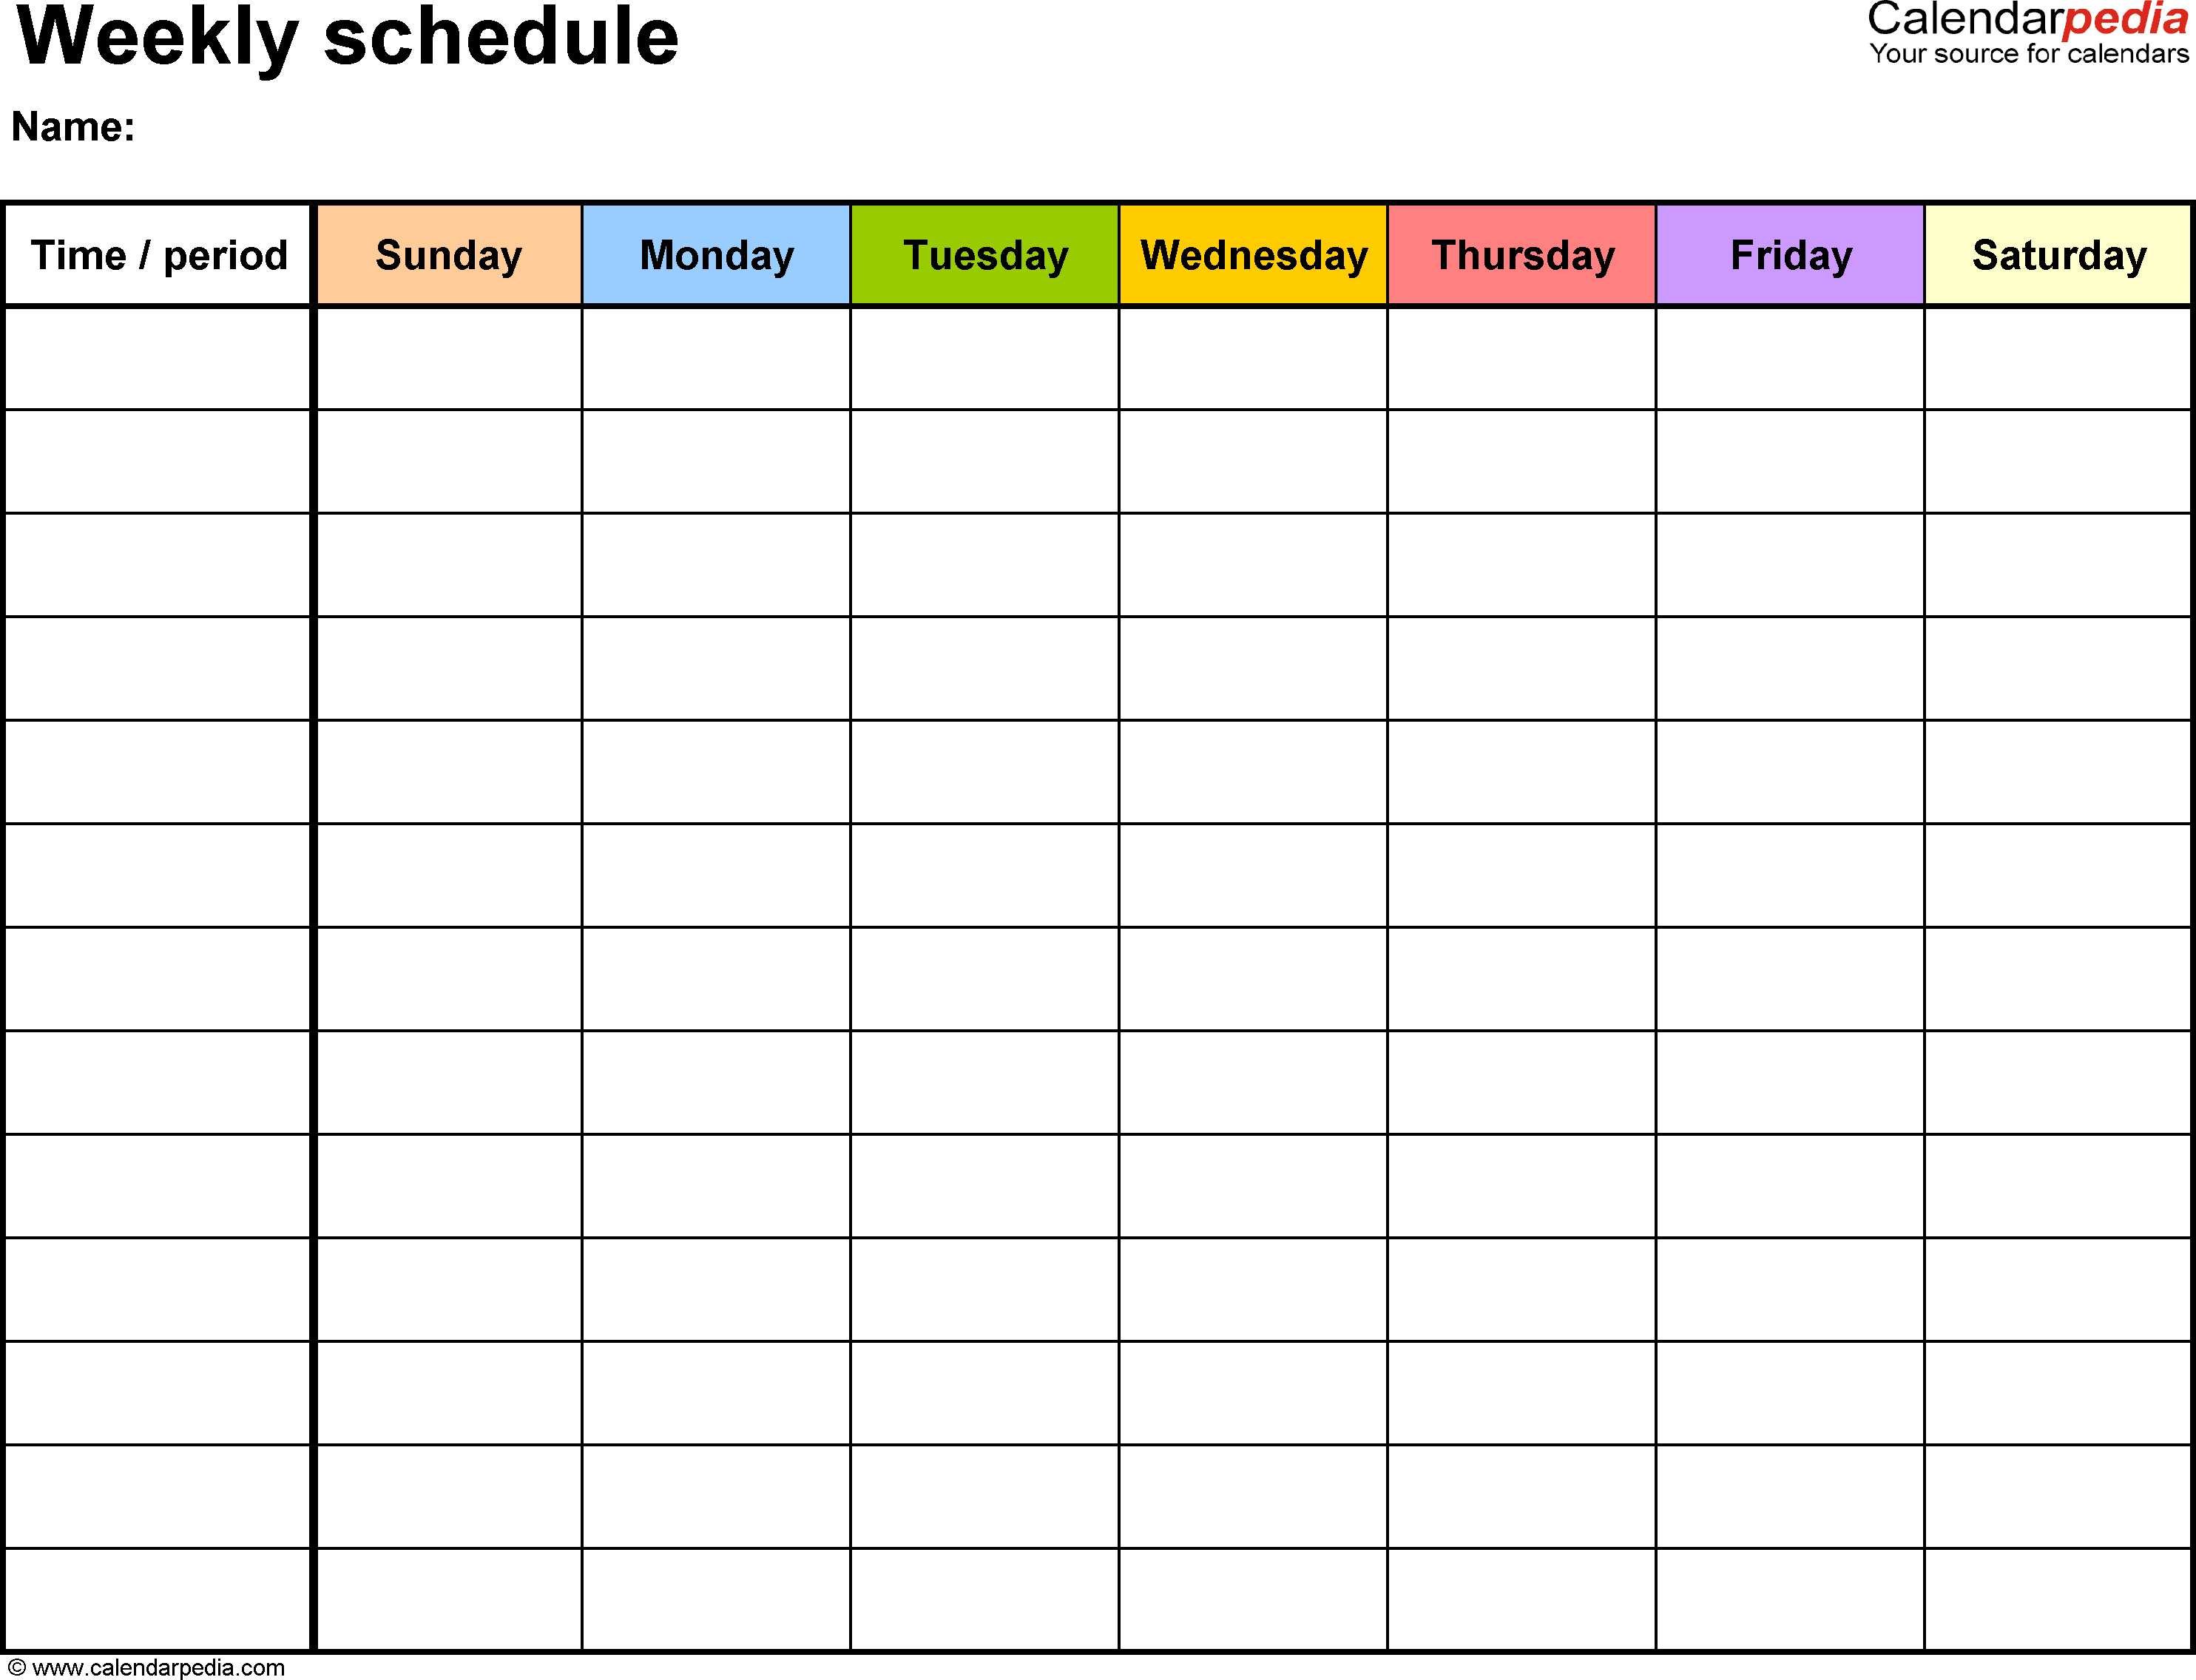 Free Weekly Schedule Templates For Word - 18 Templates regarding Weekly Planner Template For Students